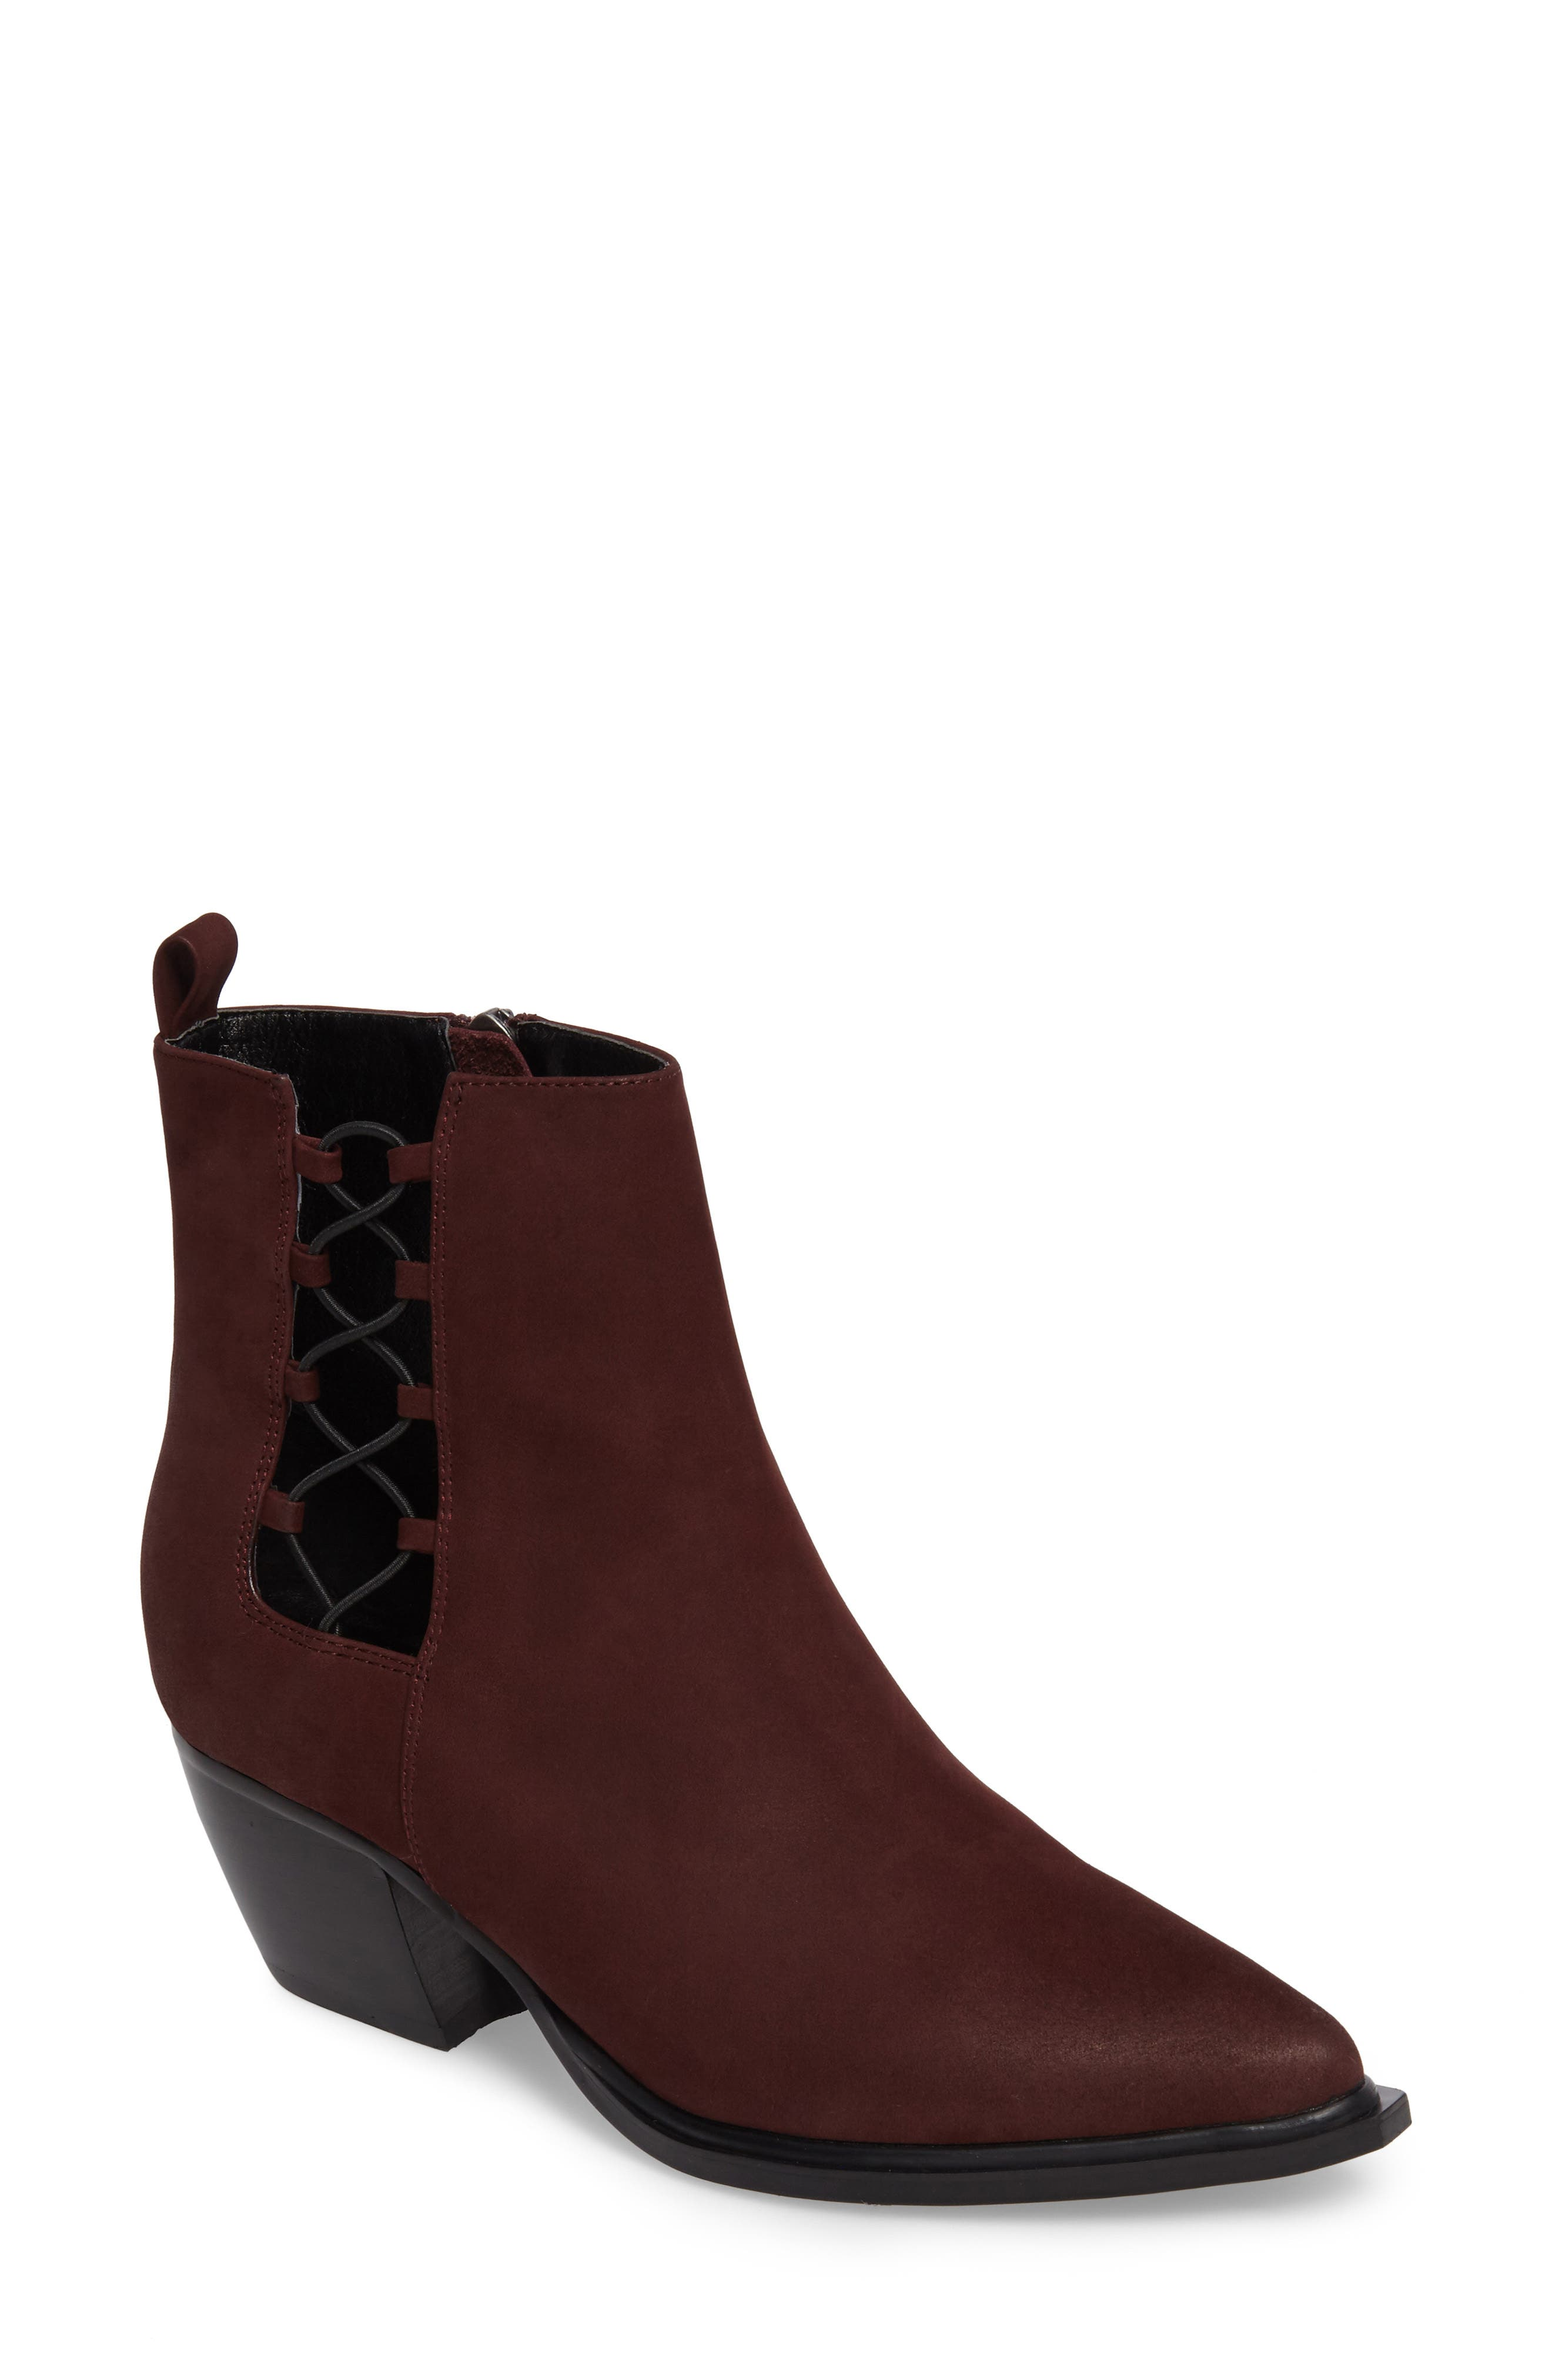 Hackney Corset Bootie,                             Main thumbnail 1, color,                             Wine Leather